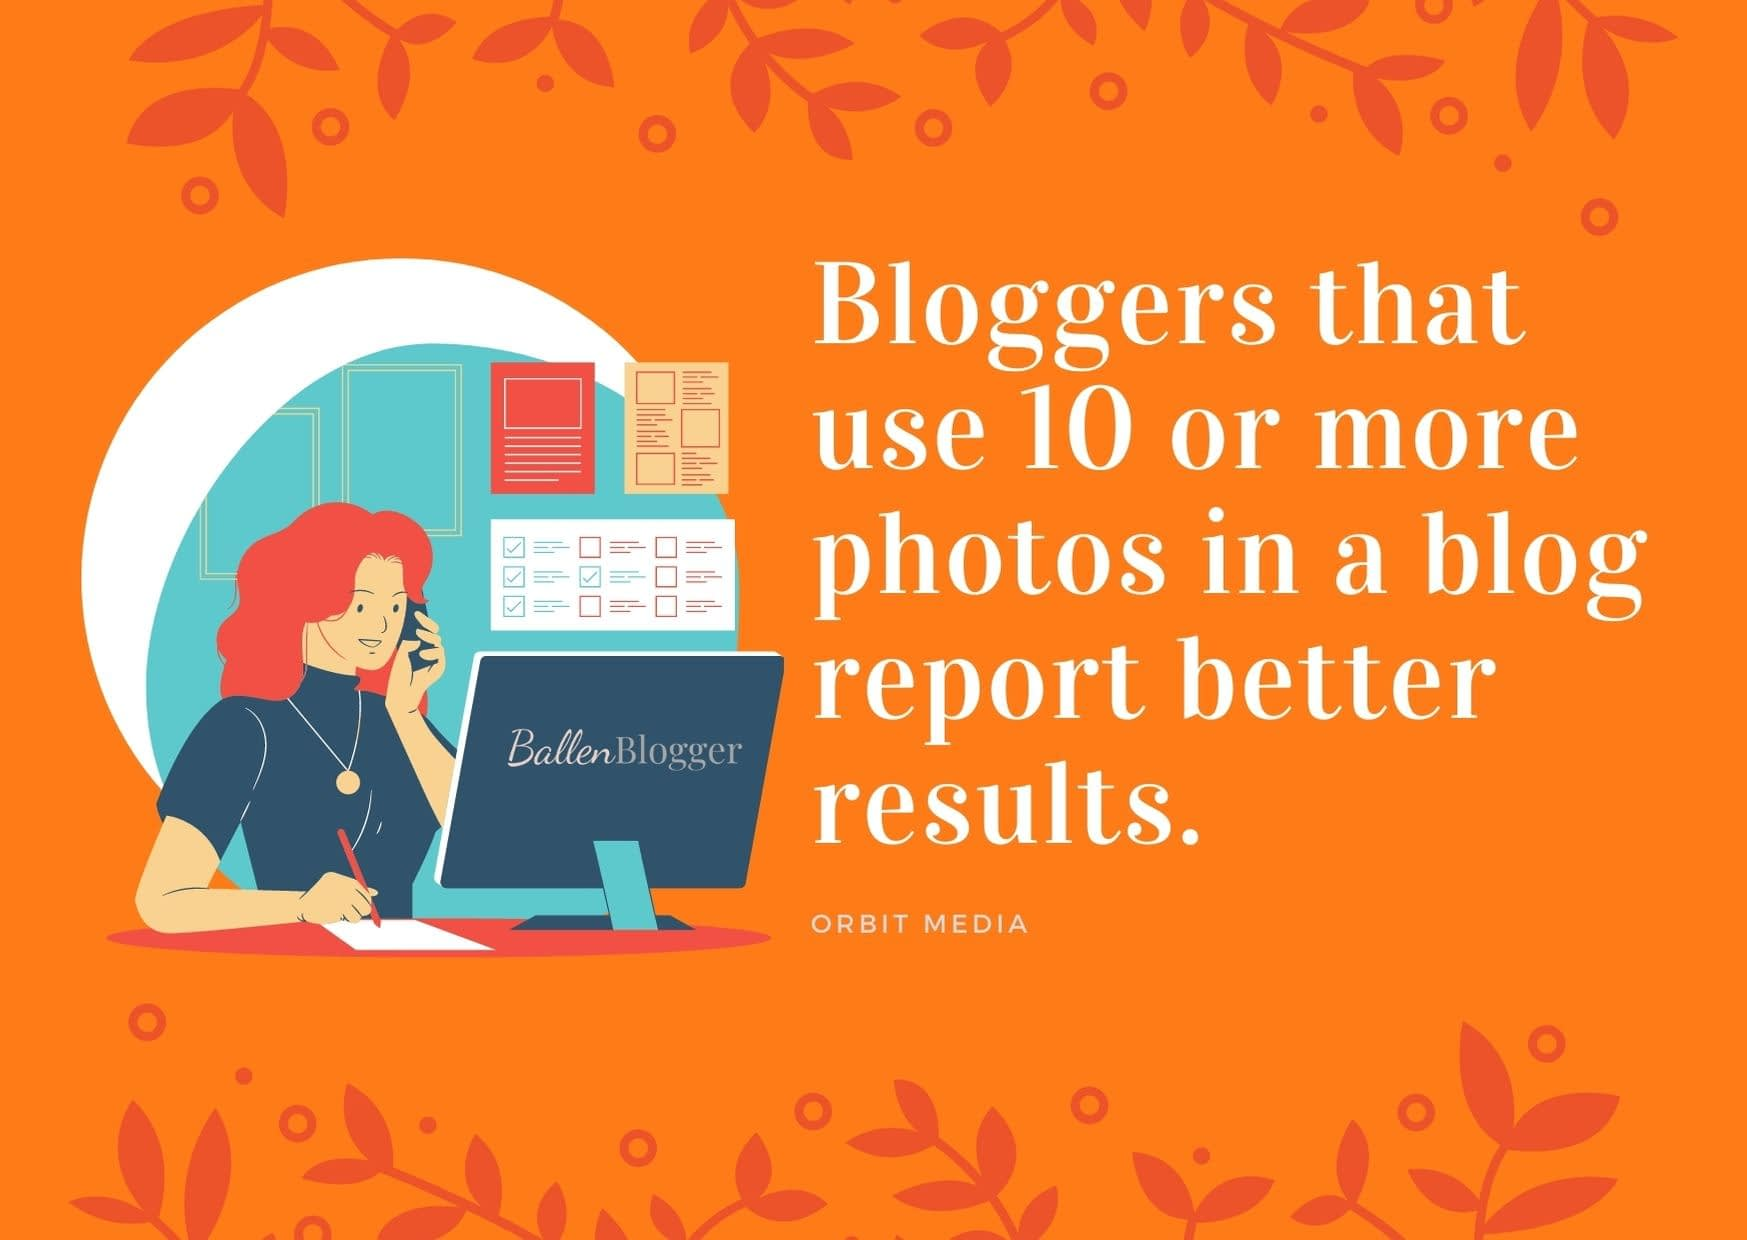 Bloggers who add 10 or more photos to a blog post generate more results.